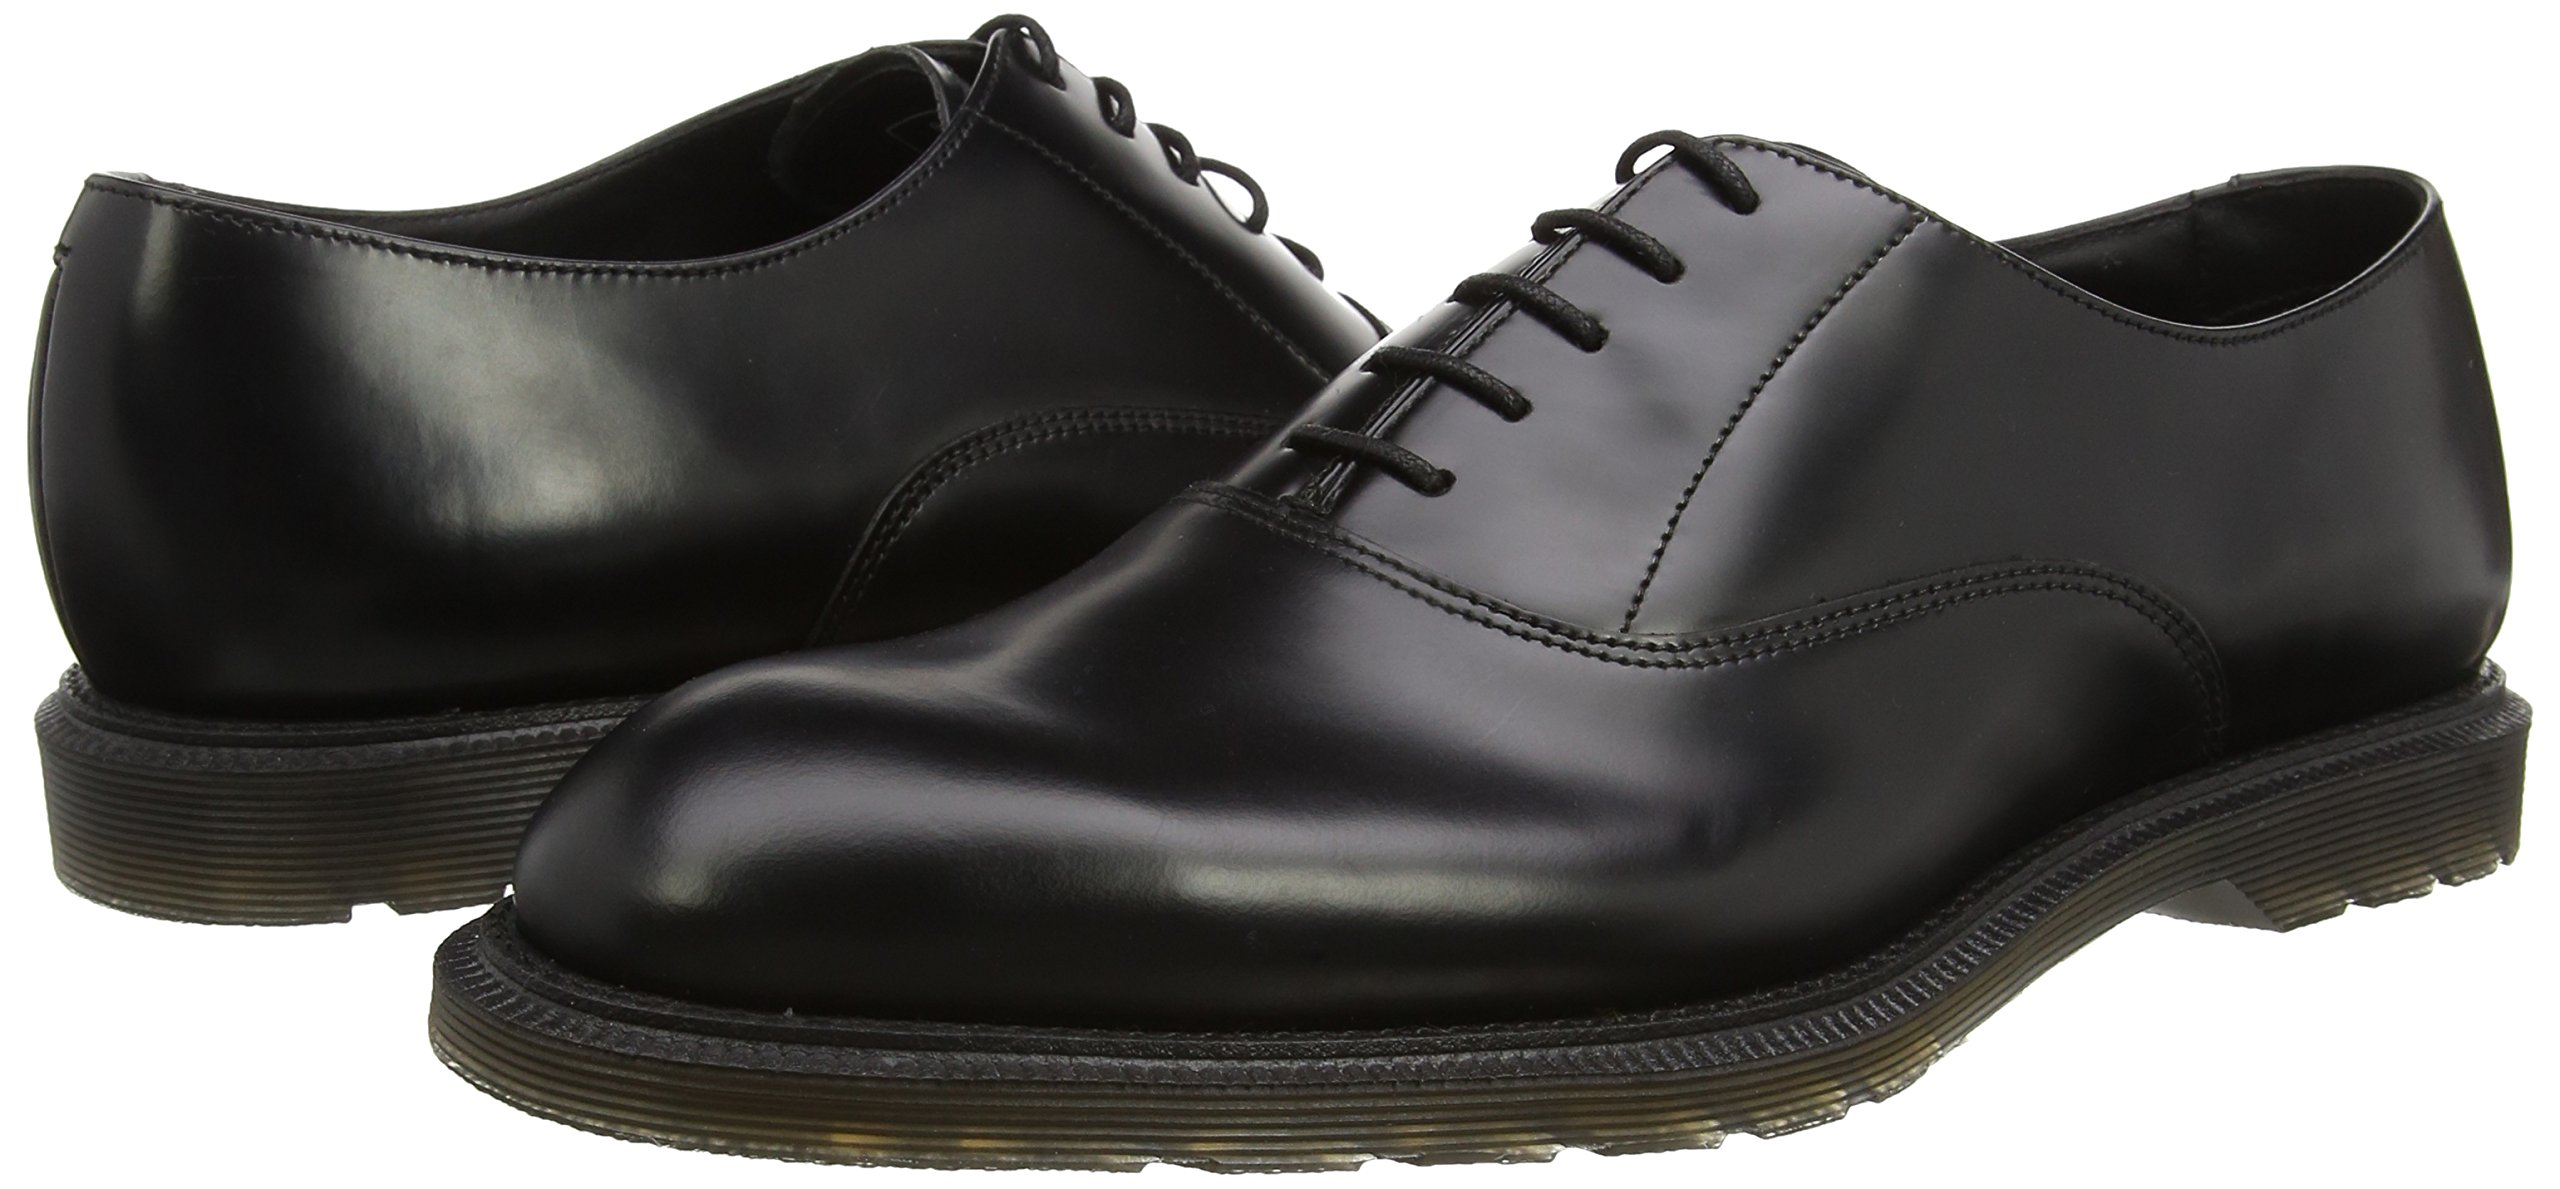 Fawkes Black Polished Smooth Oxfords